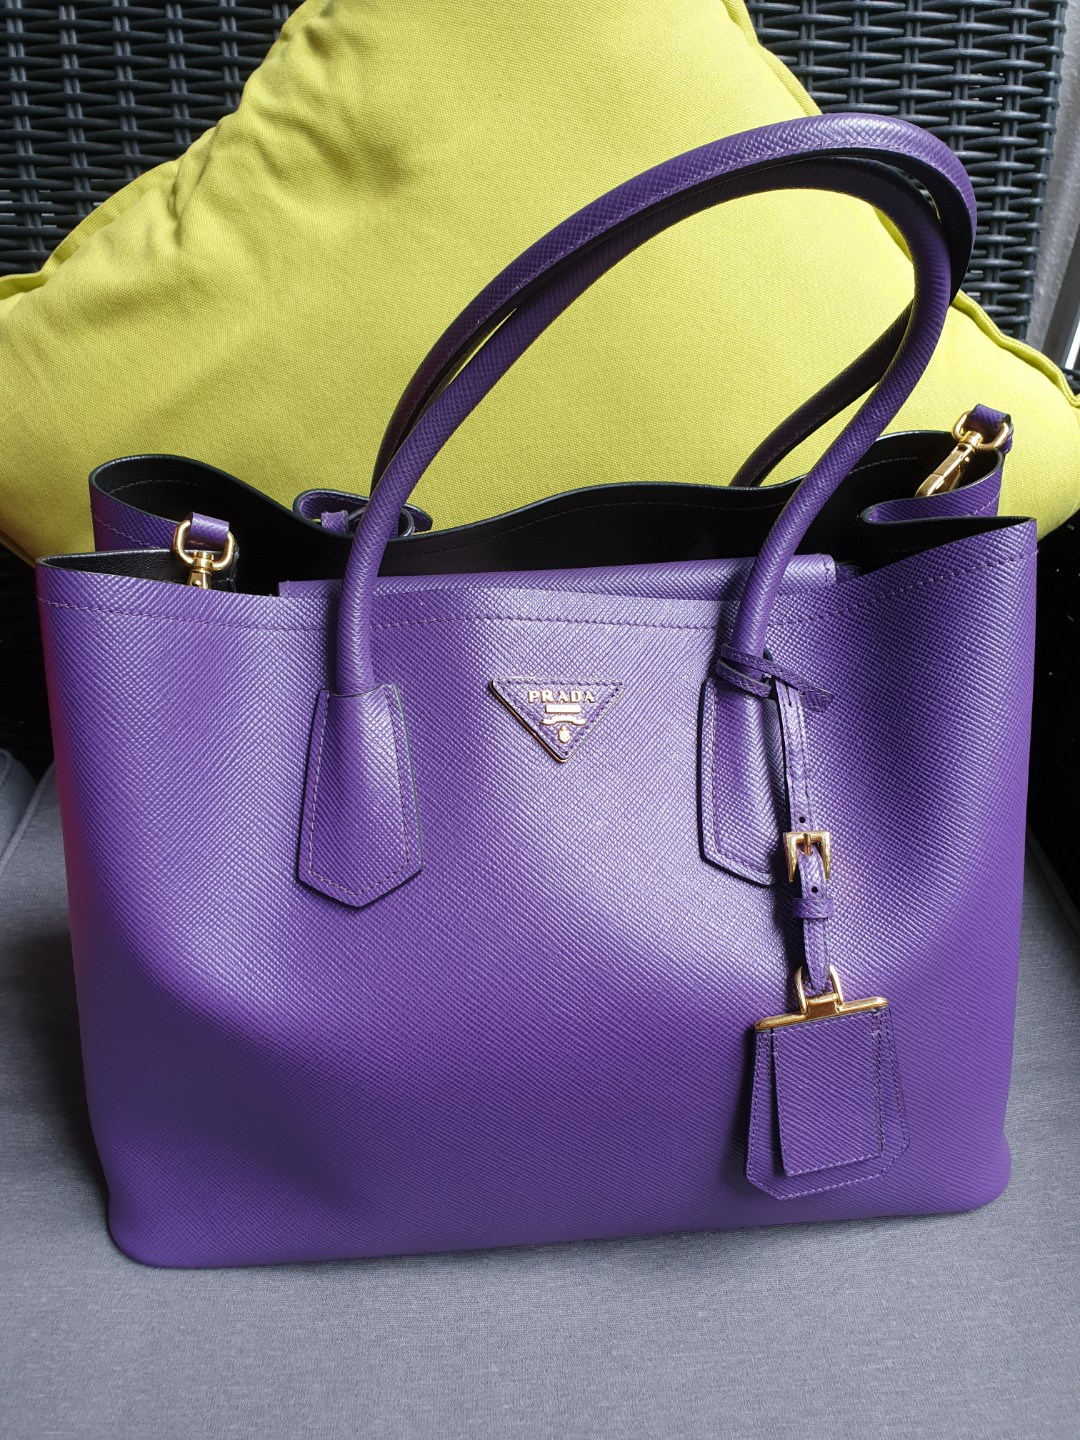 1be162f6b77b Prada Saffiano Cuir Double Tote Bag, Luxury, Bags & Wallets ...